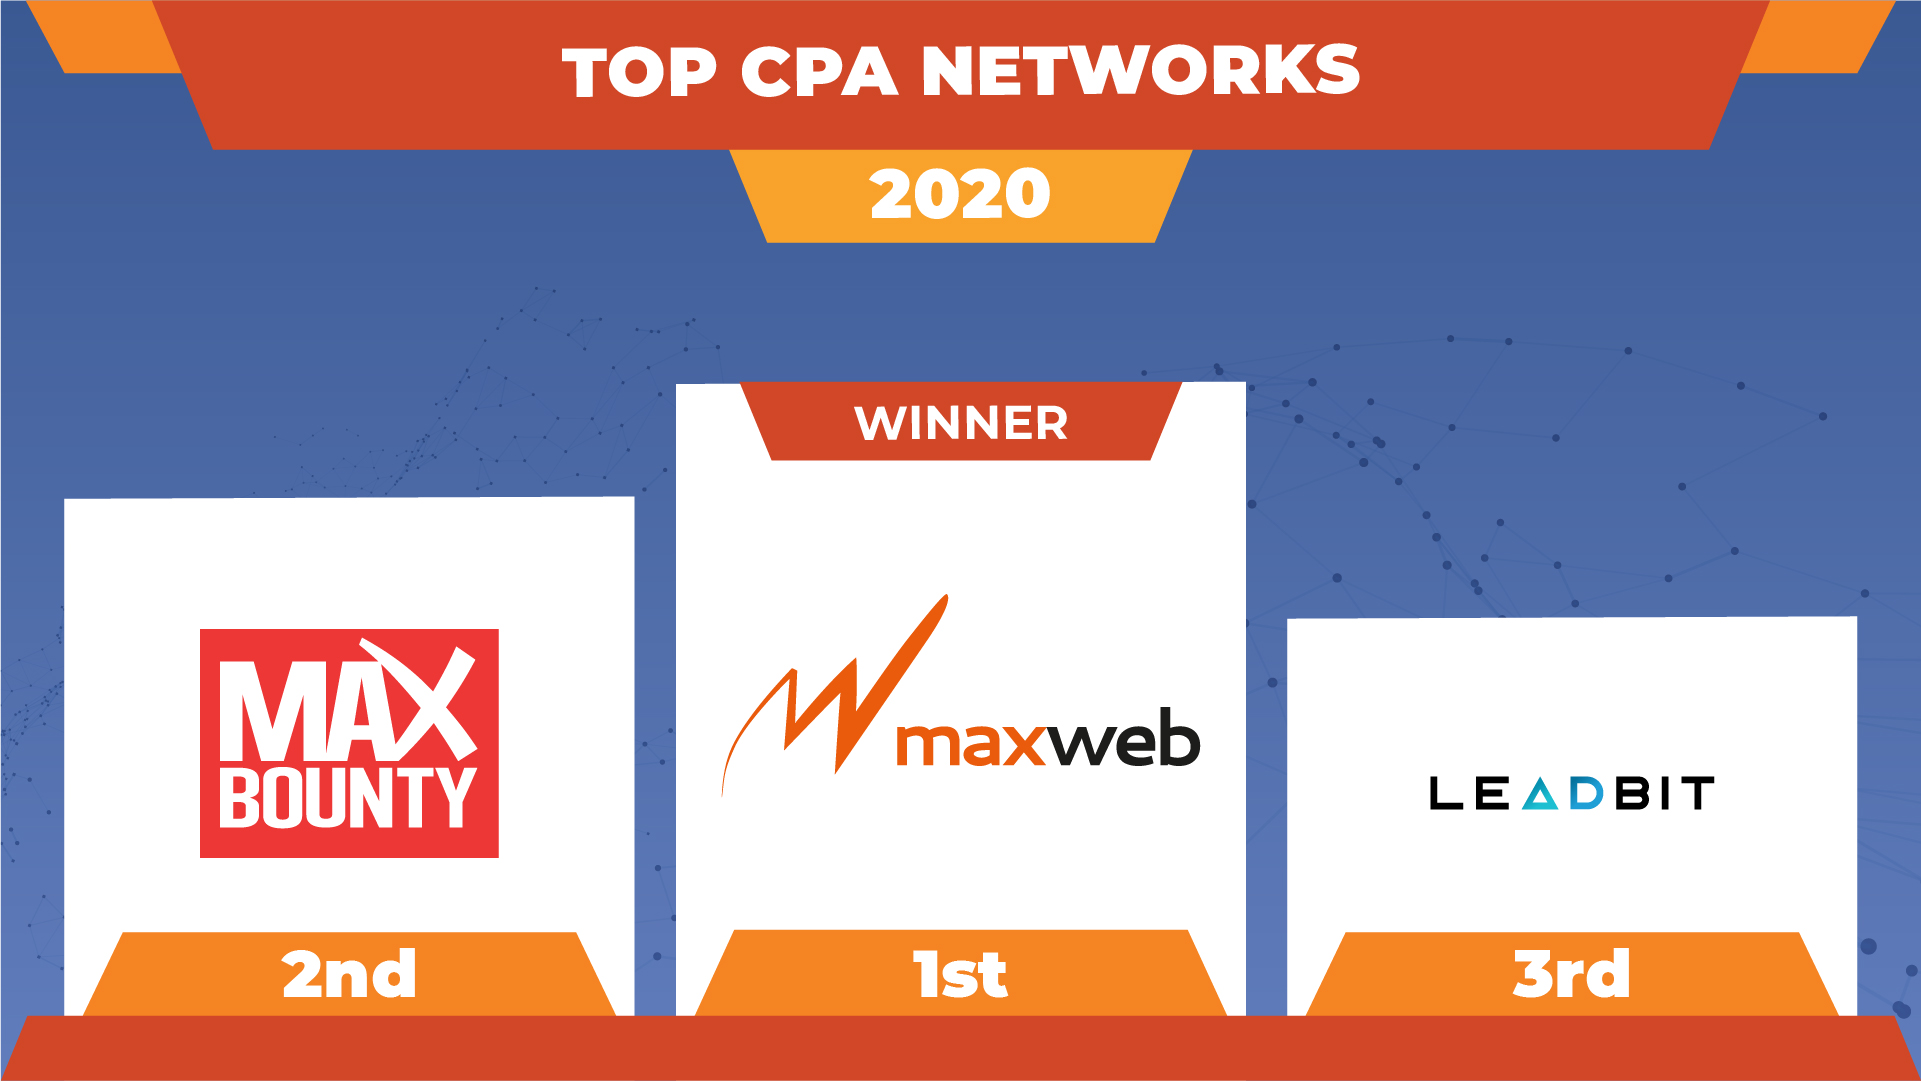 Top CPA Networks